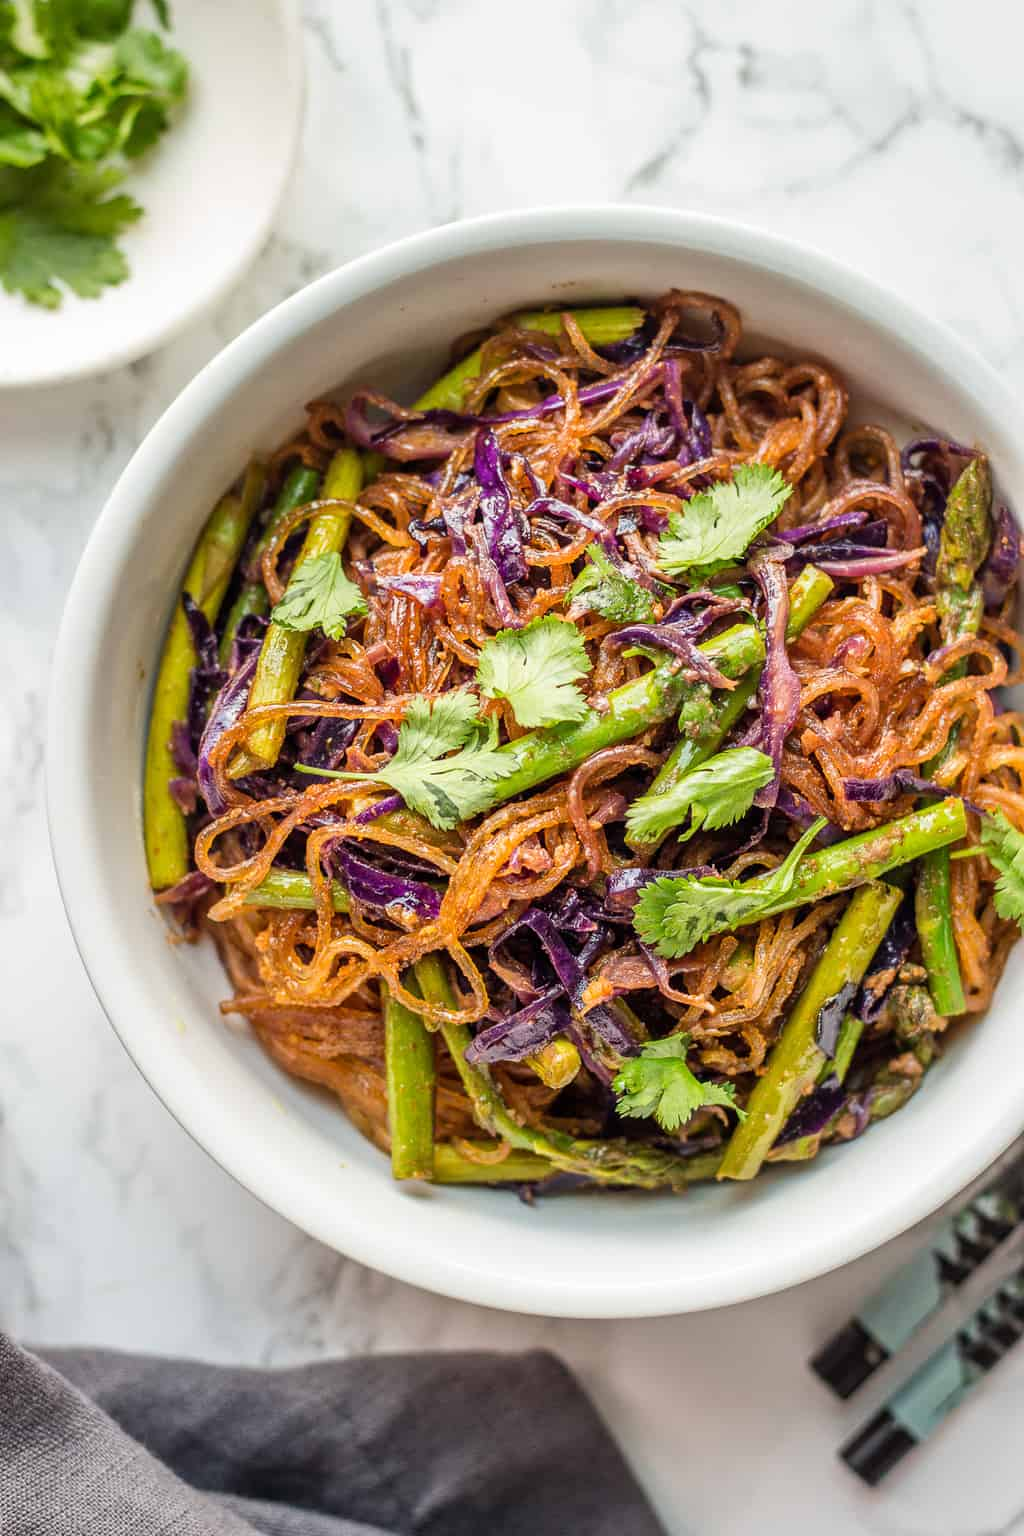 Cellophane noodle stir fry in a bowl